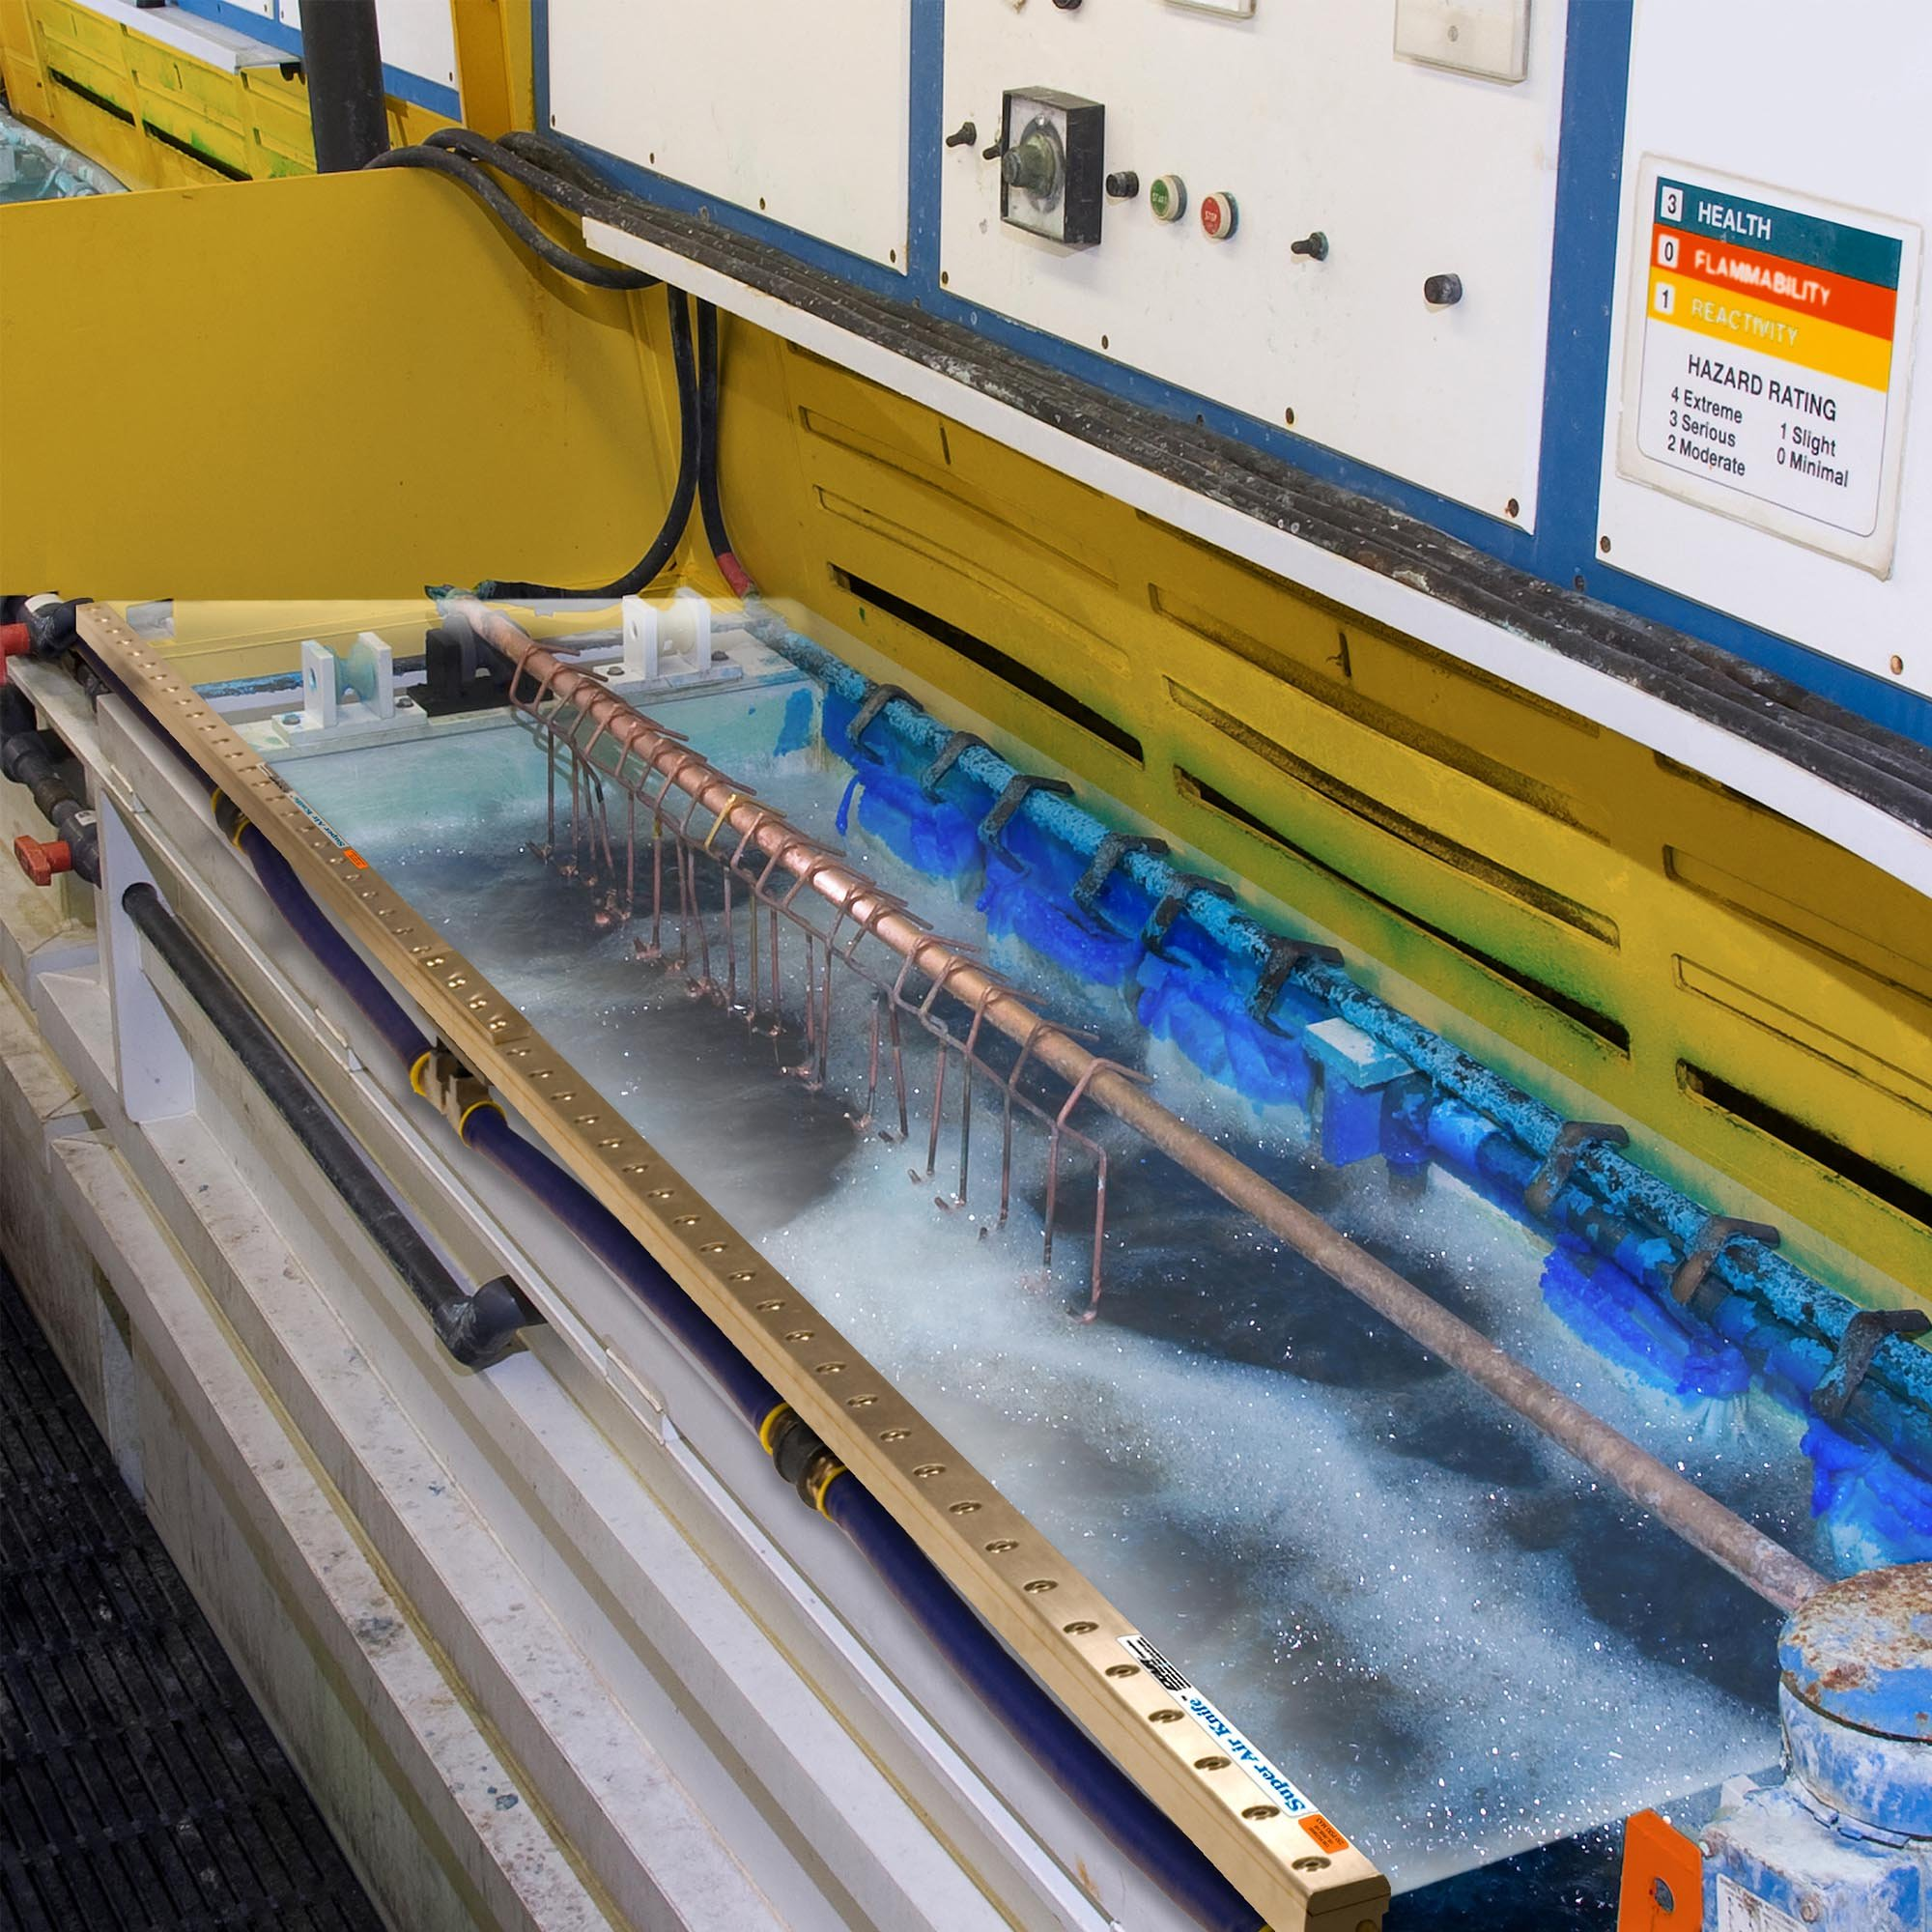 An aluminum Super Air Knife with Plumbing Kit blowing off debris and cooling sheet metal during a laser cutting operation.